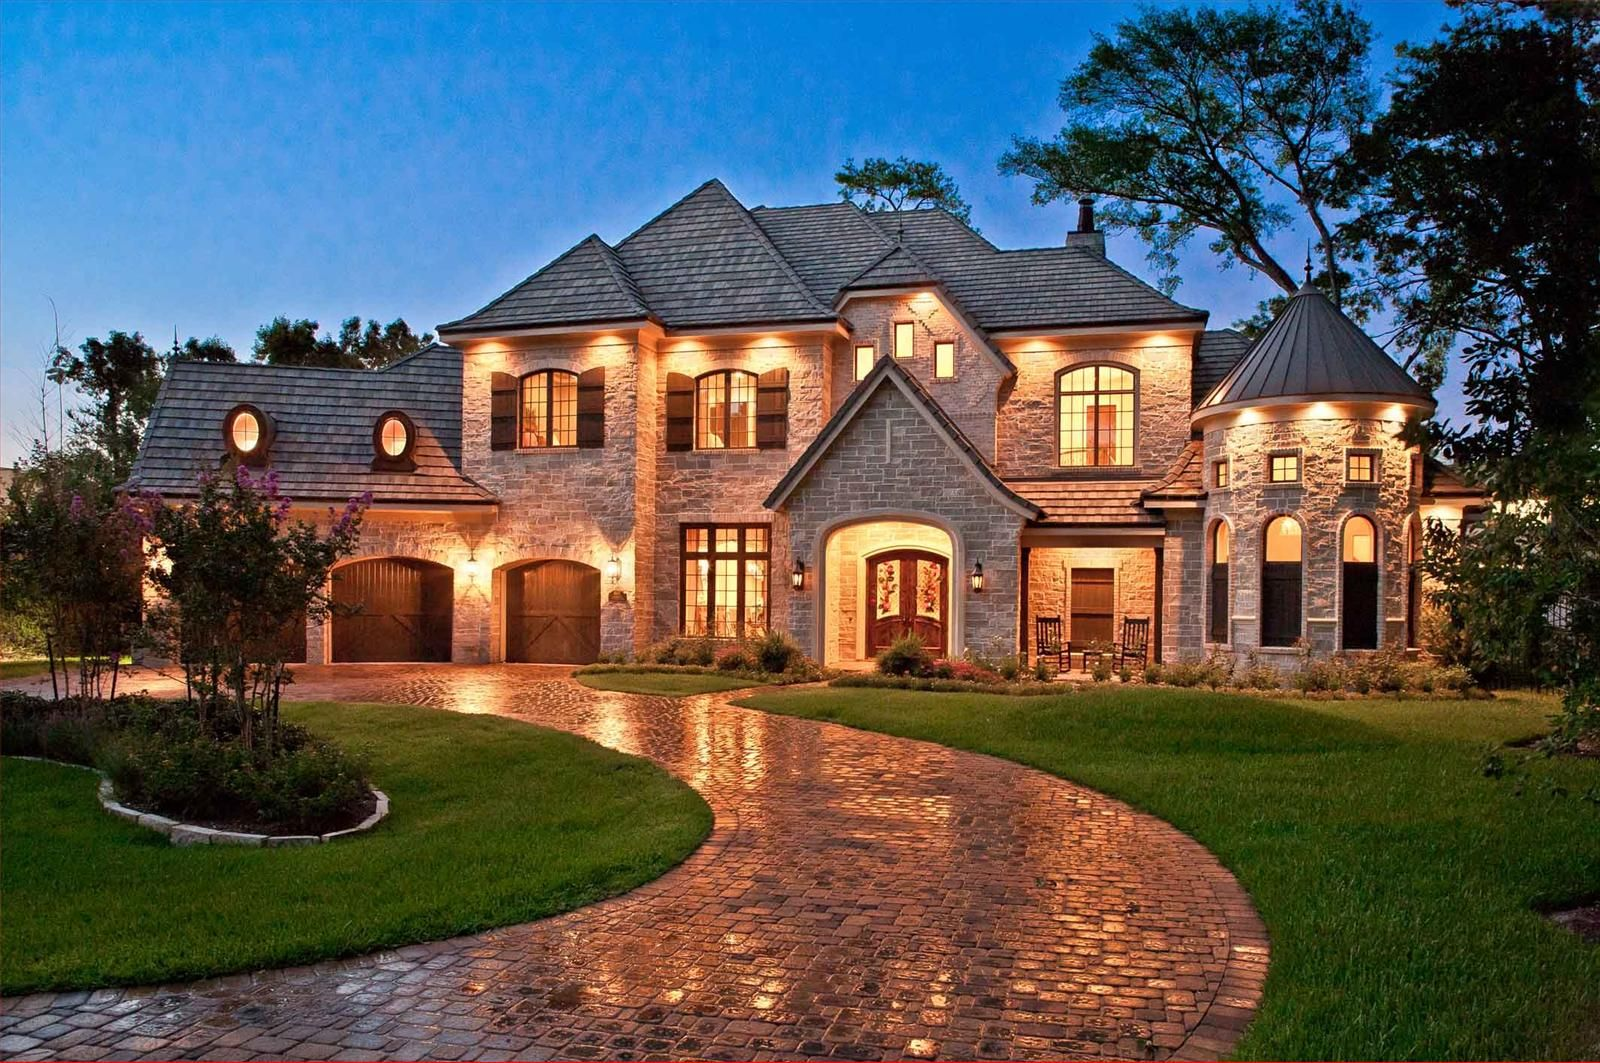 Gorgeous french country house design exterior with large for Home designs exterior styles